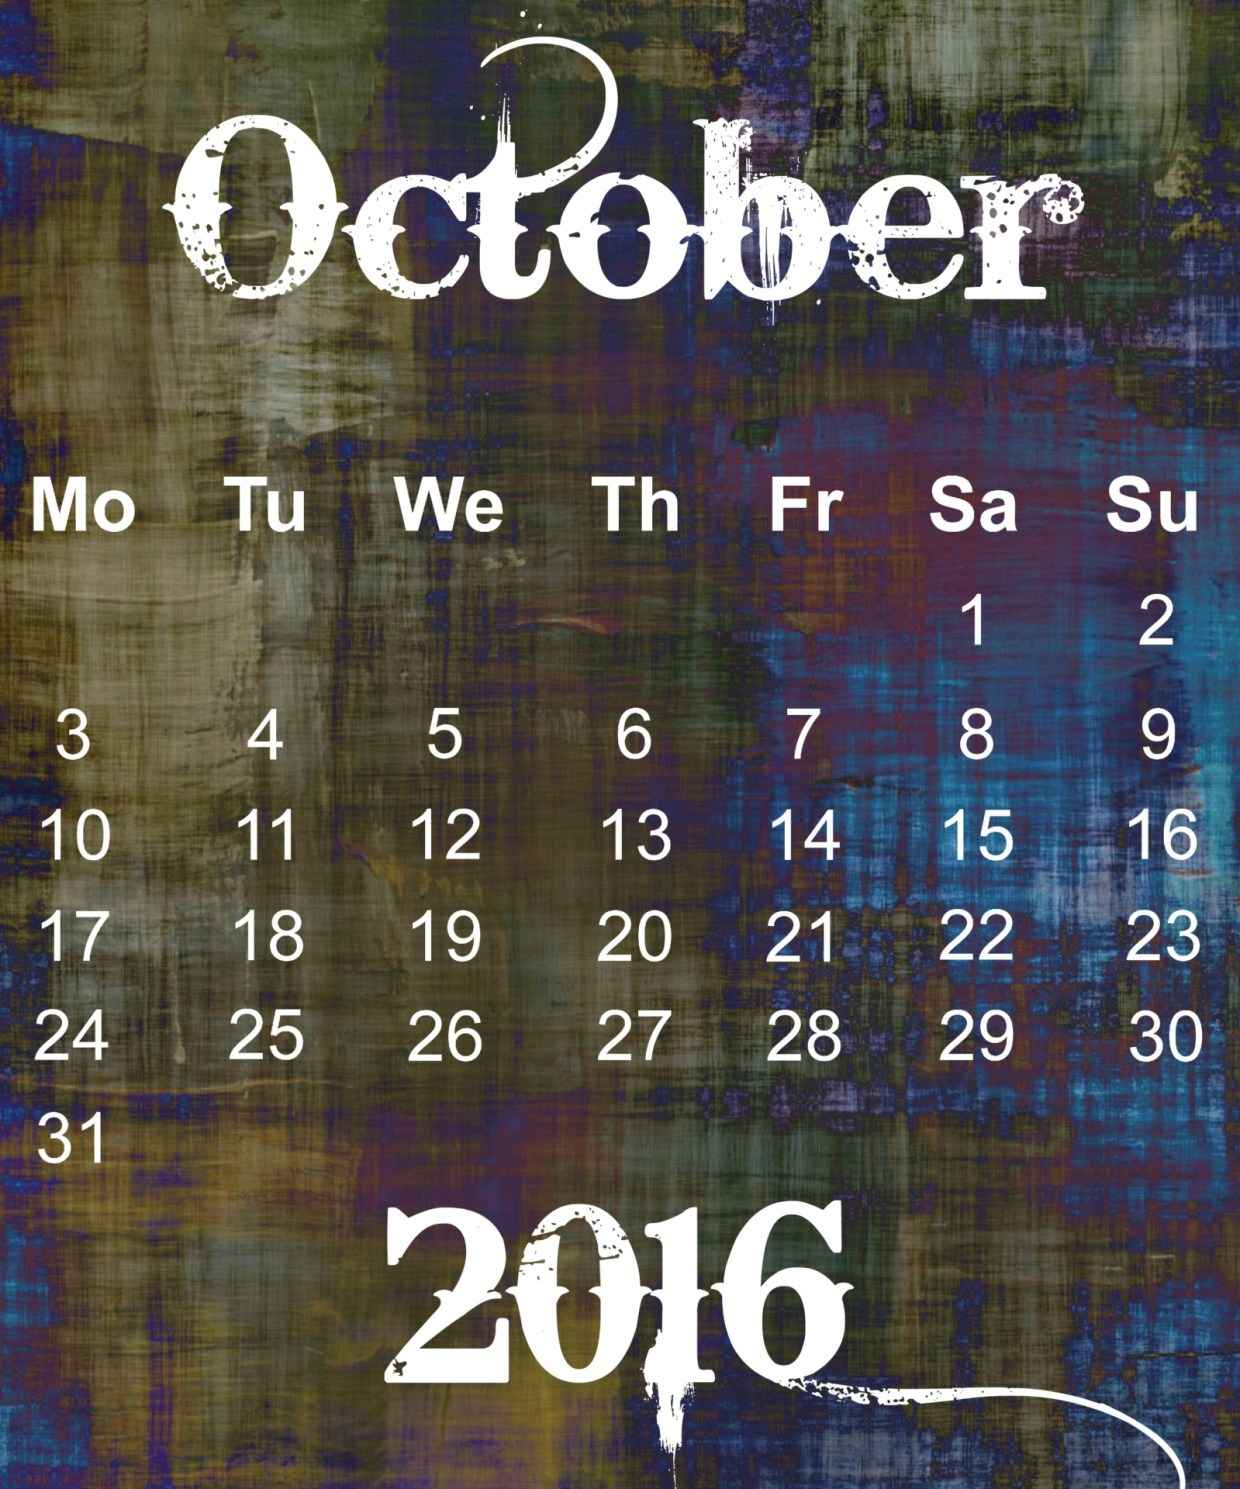 'October 2016 Grunge Calender' by Kevin Phillips. Used under Public Domain